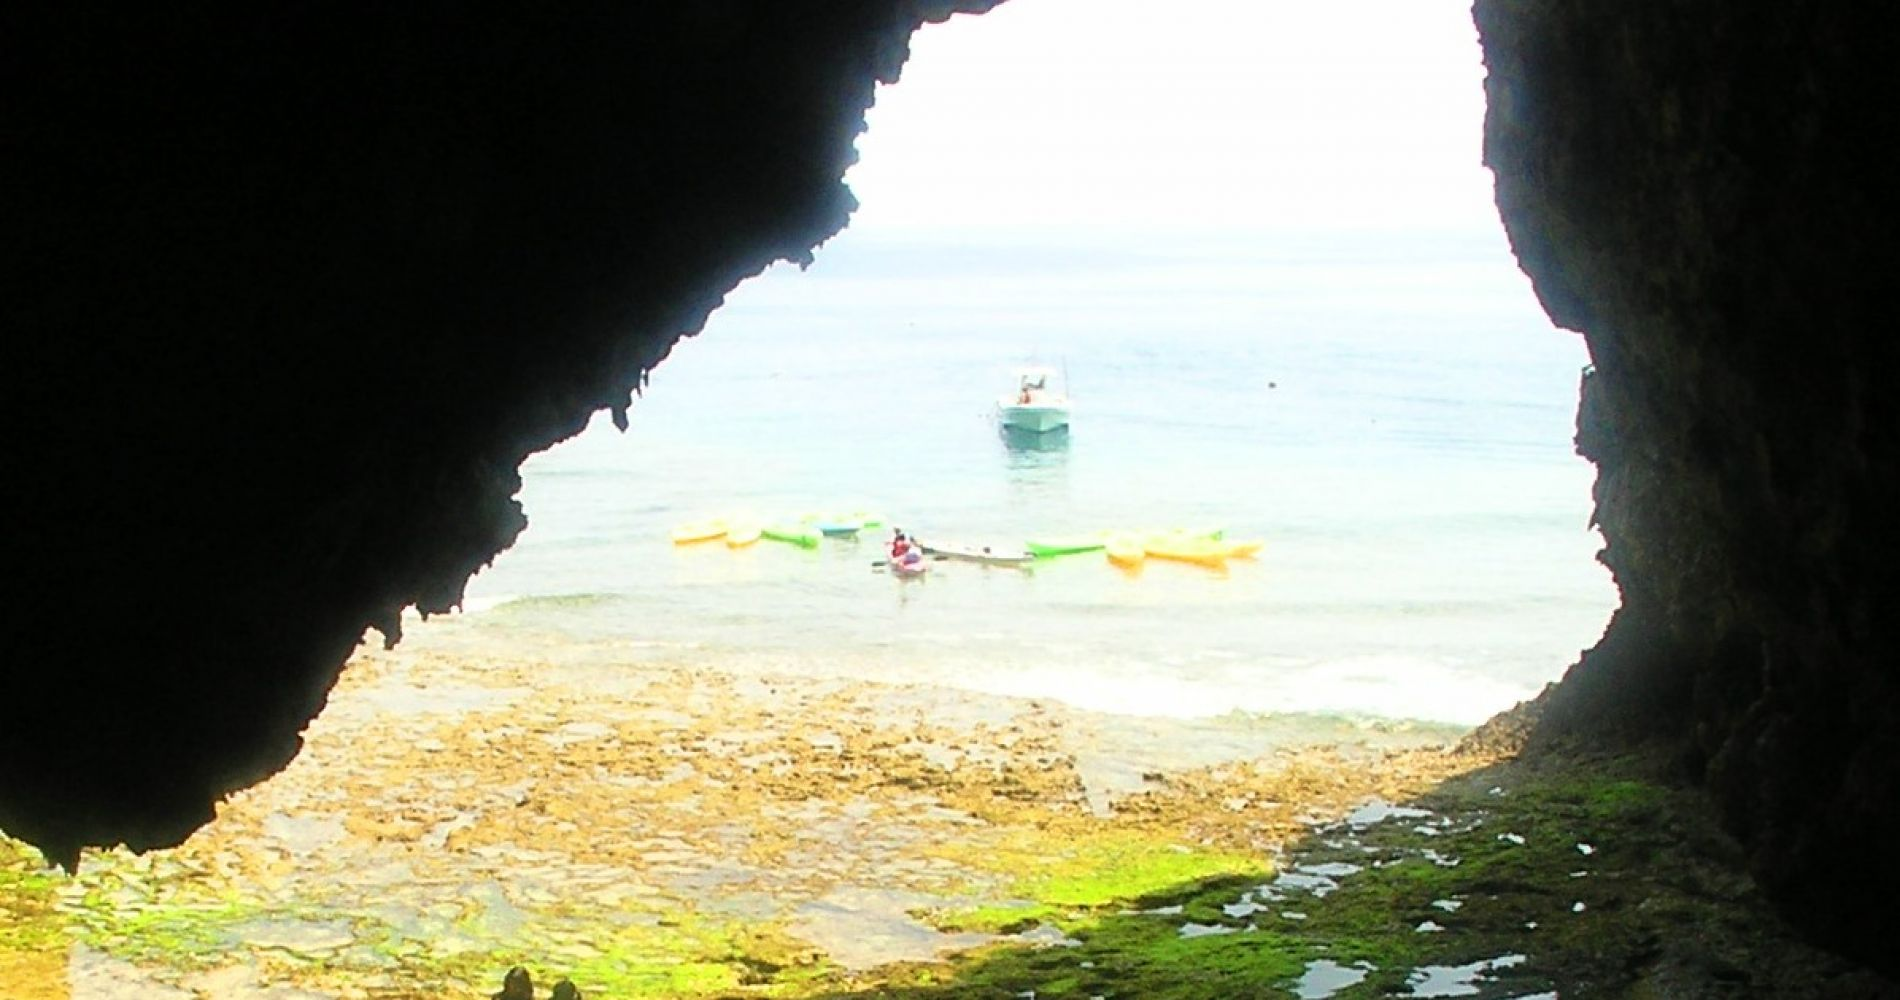 Kayak and Snorkeling Adventure in Blue Cave, Okinawa